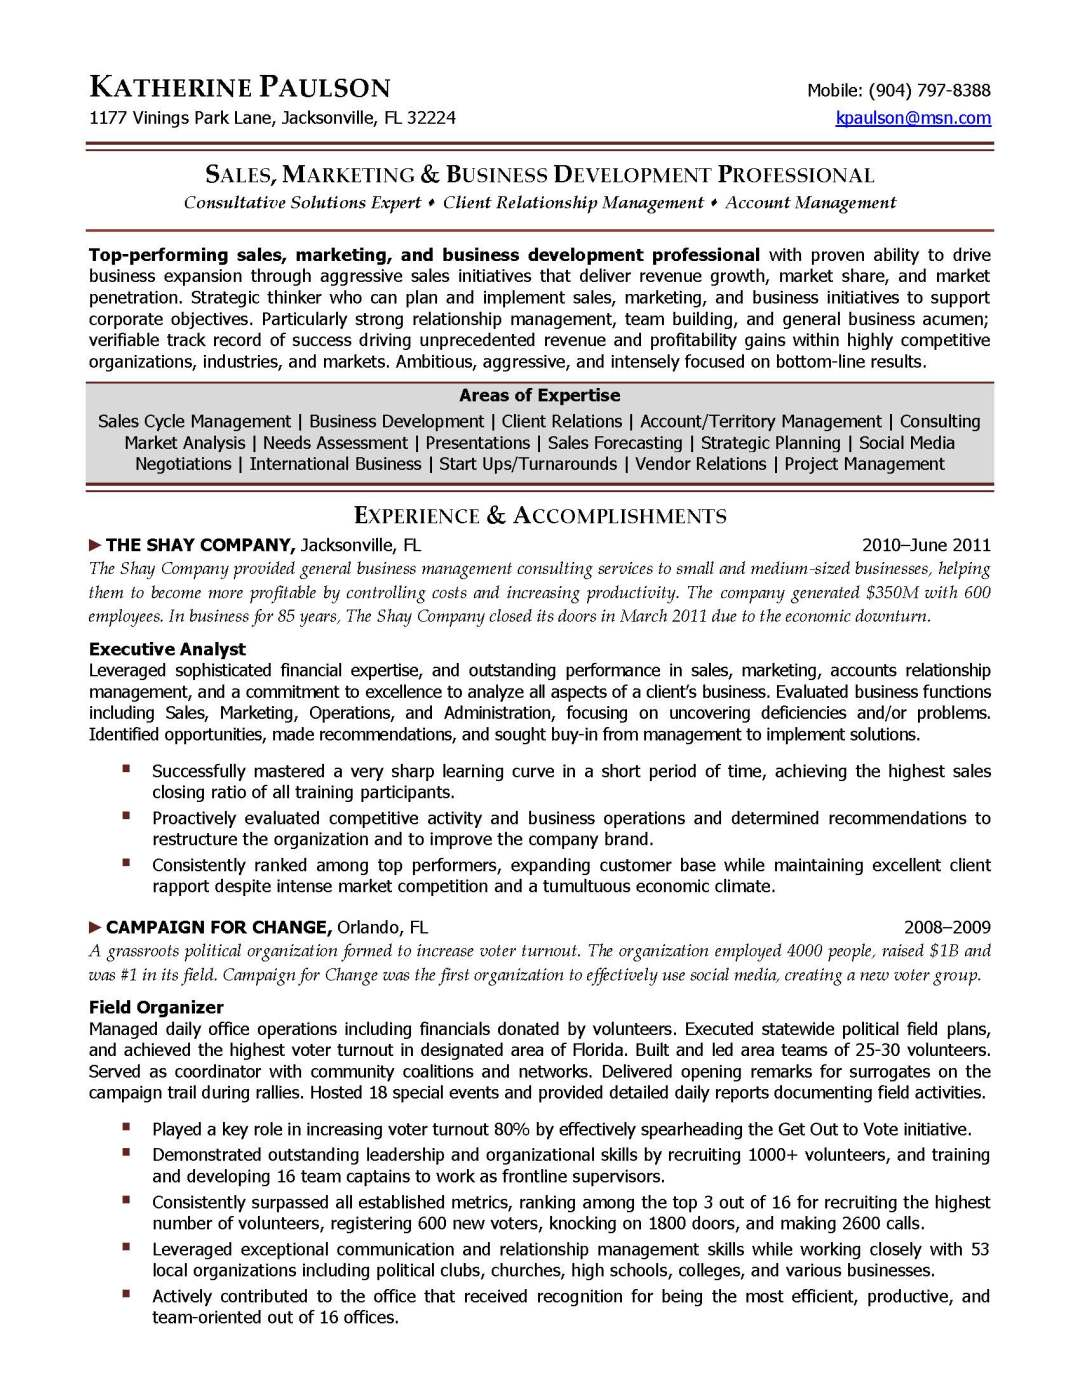 business development director resume sample provided by elite resume writing services